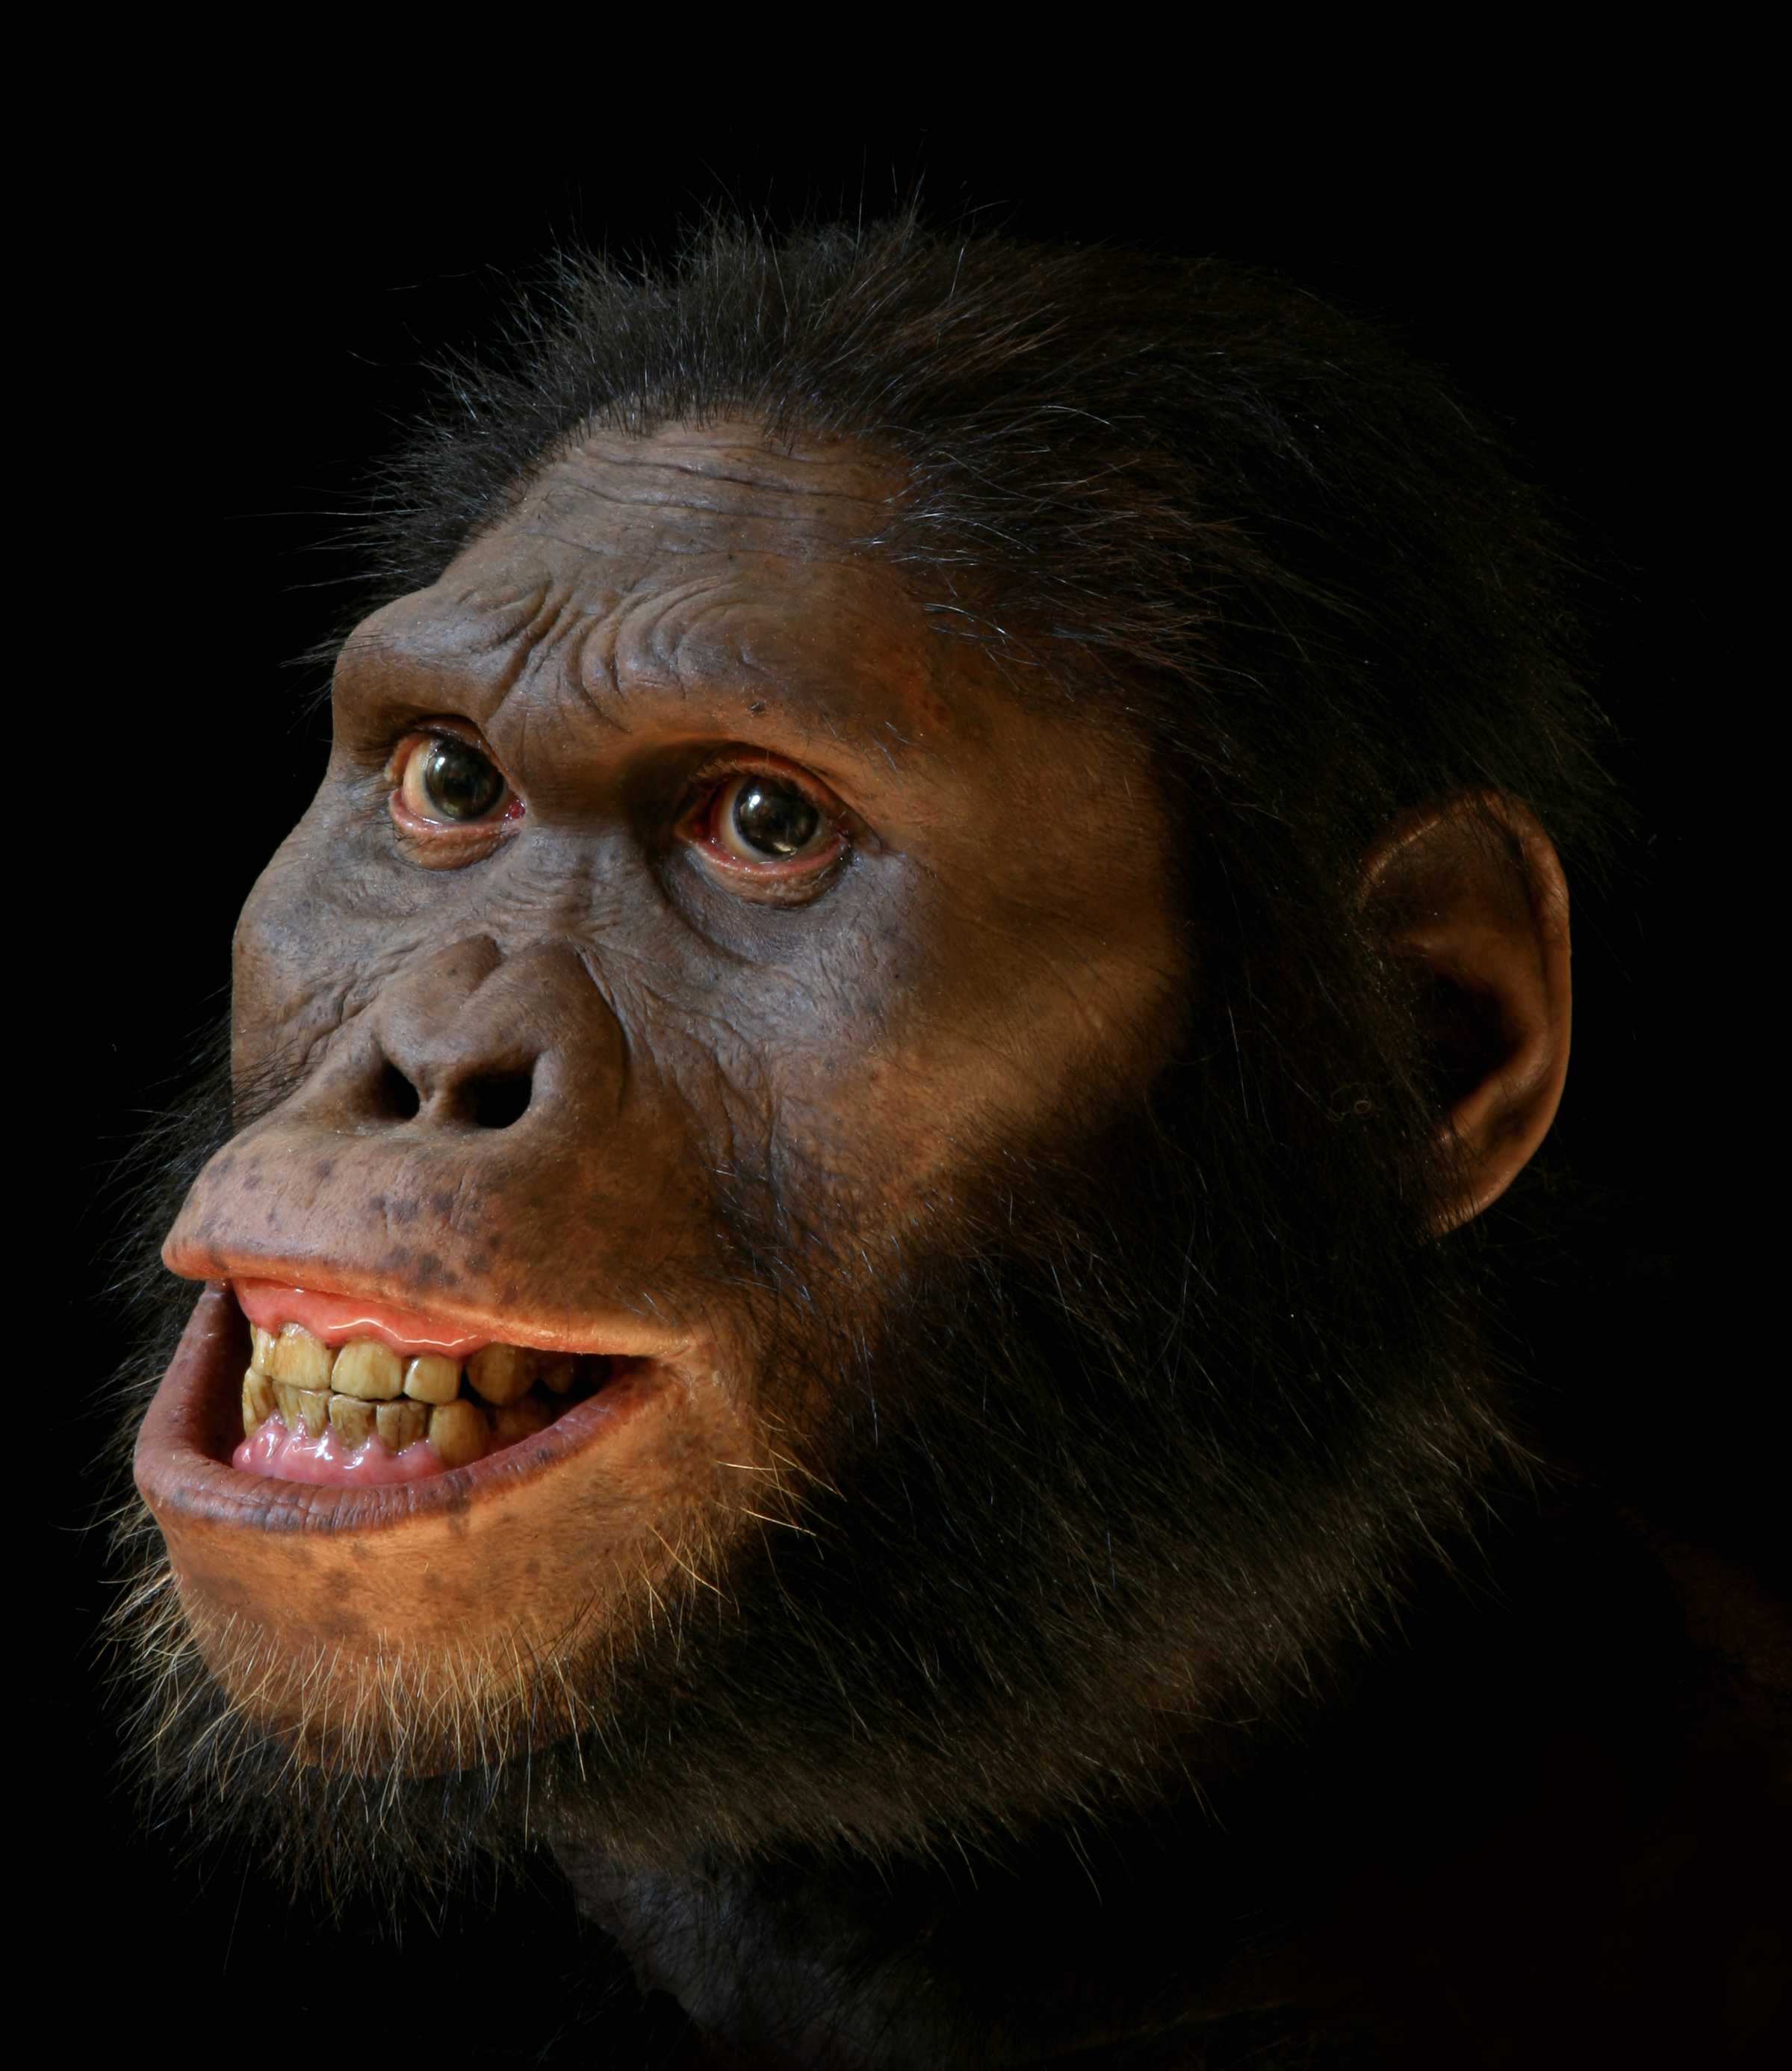 Alternate views of Australopithecus africanus reconstruction, now on exhibit in the Smithsonian's Hall of Human Origins.